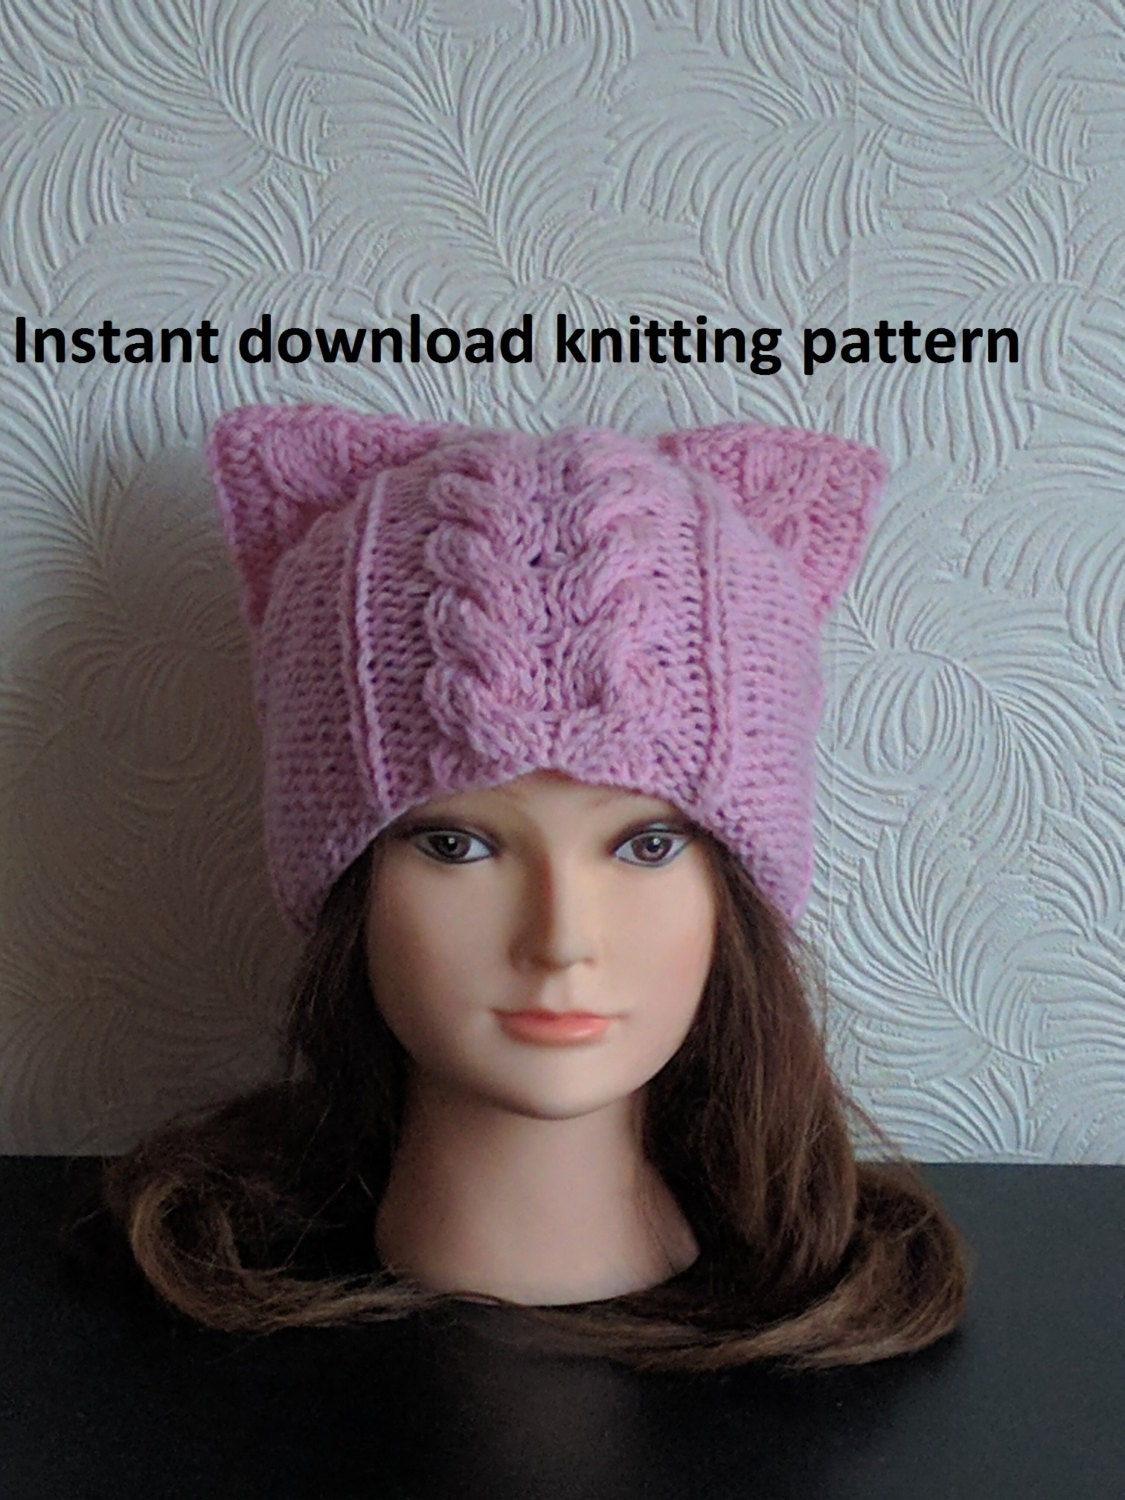 Instant Download knitting pattern Cat ear hat knitting